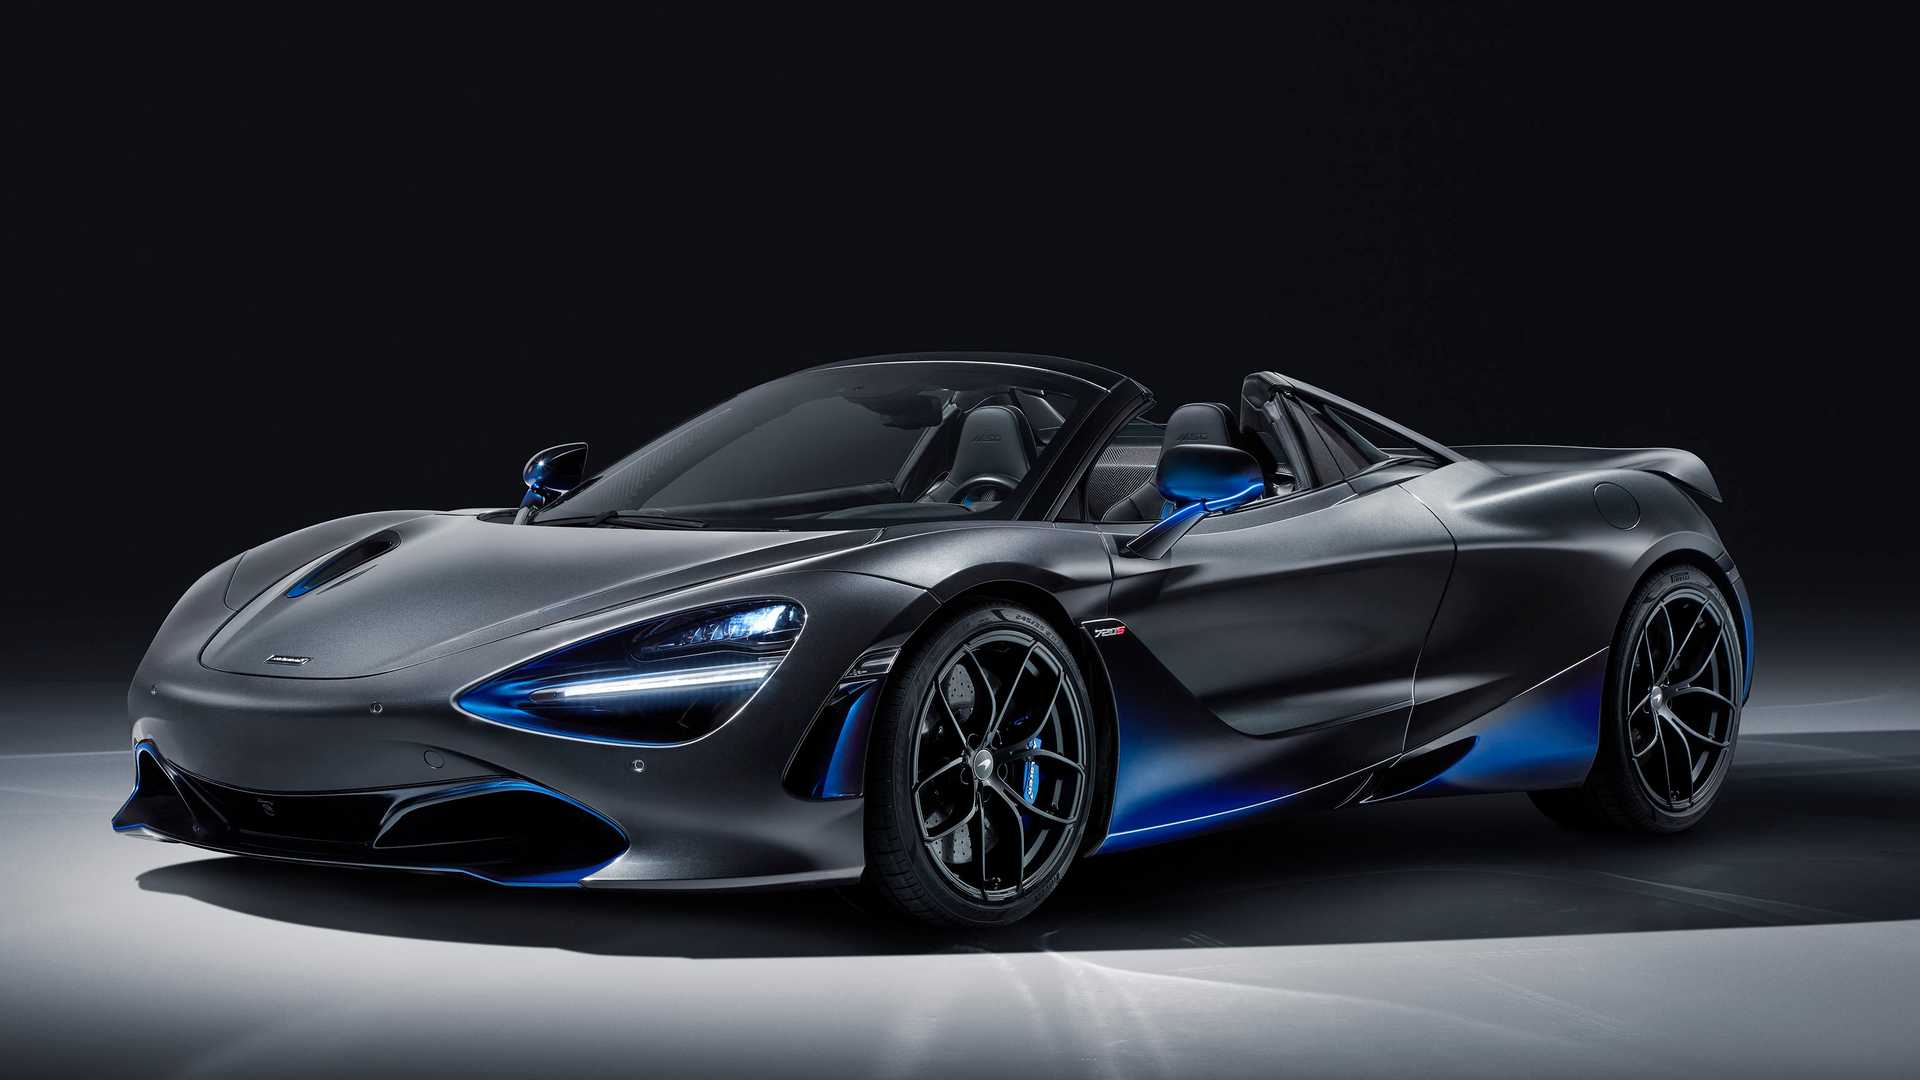 2019 McLaren 720S Spider by MSO Front Three-Quarter Wallpapers (1)